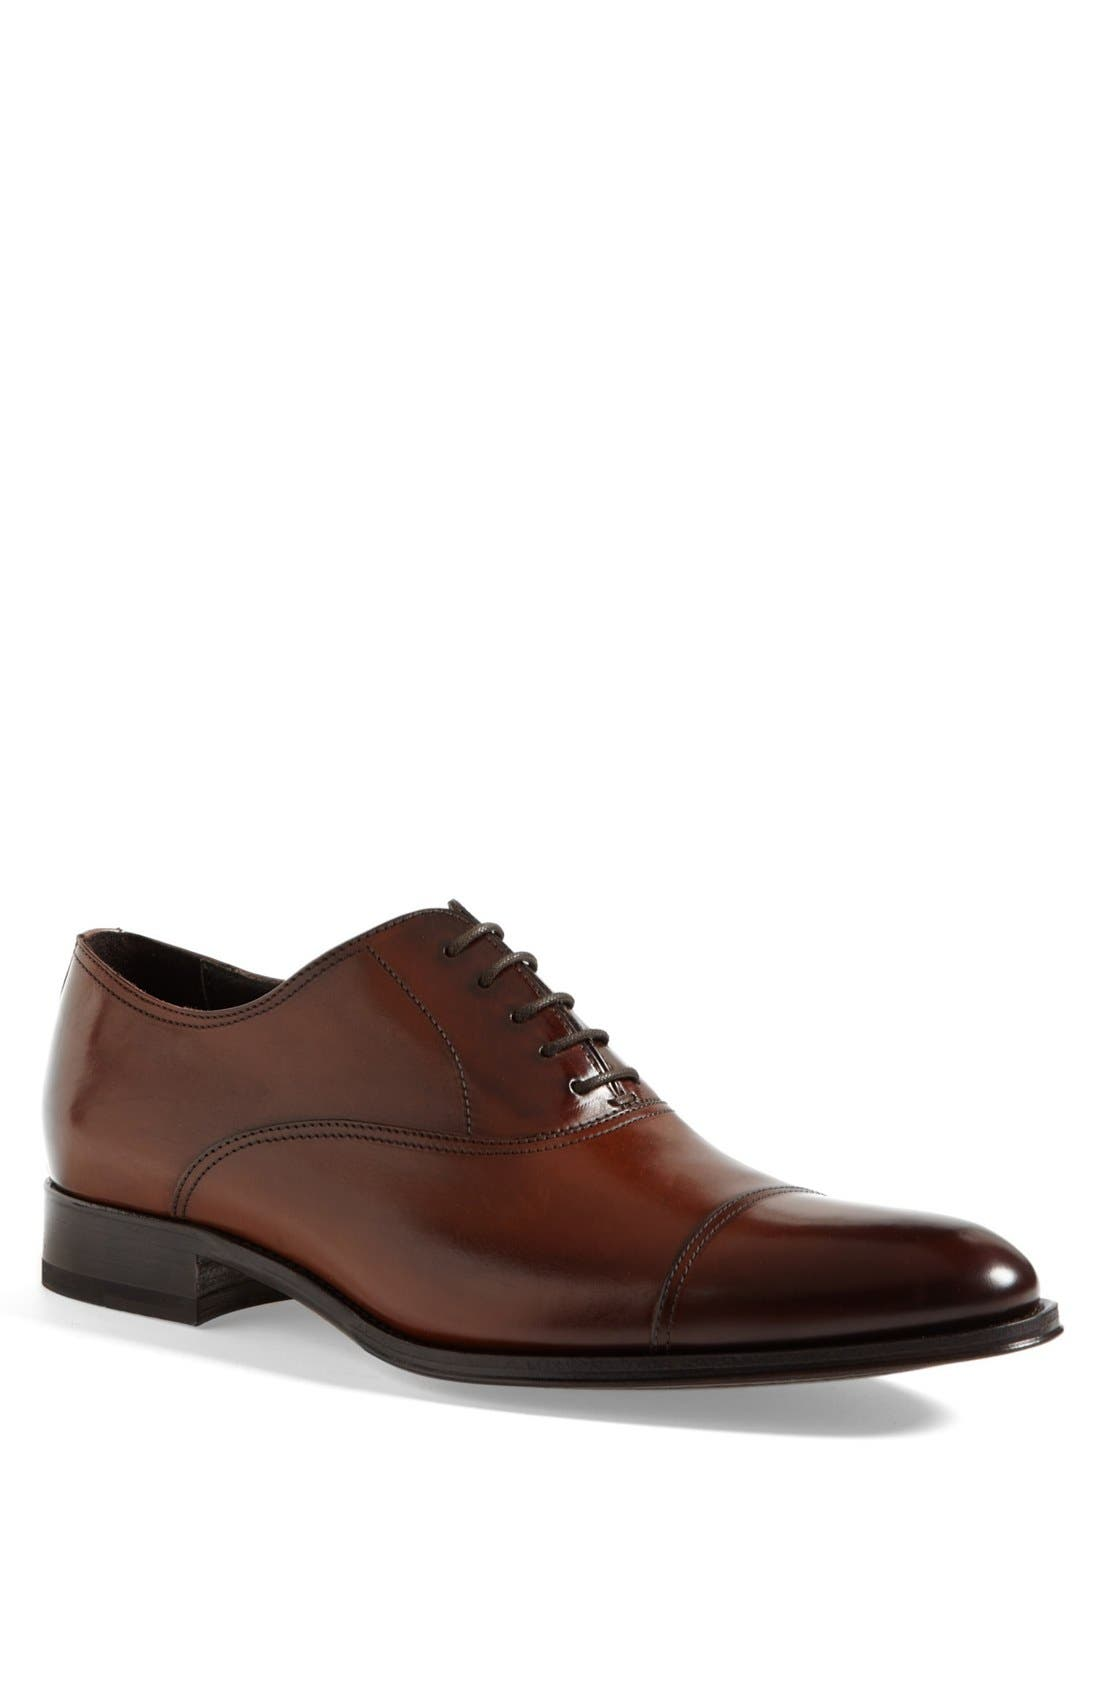 Main Image - To Boot New York Brandon Cap Toe Oxford (Nordstrom Exclusive) (Men)